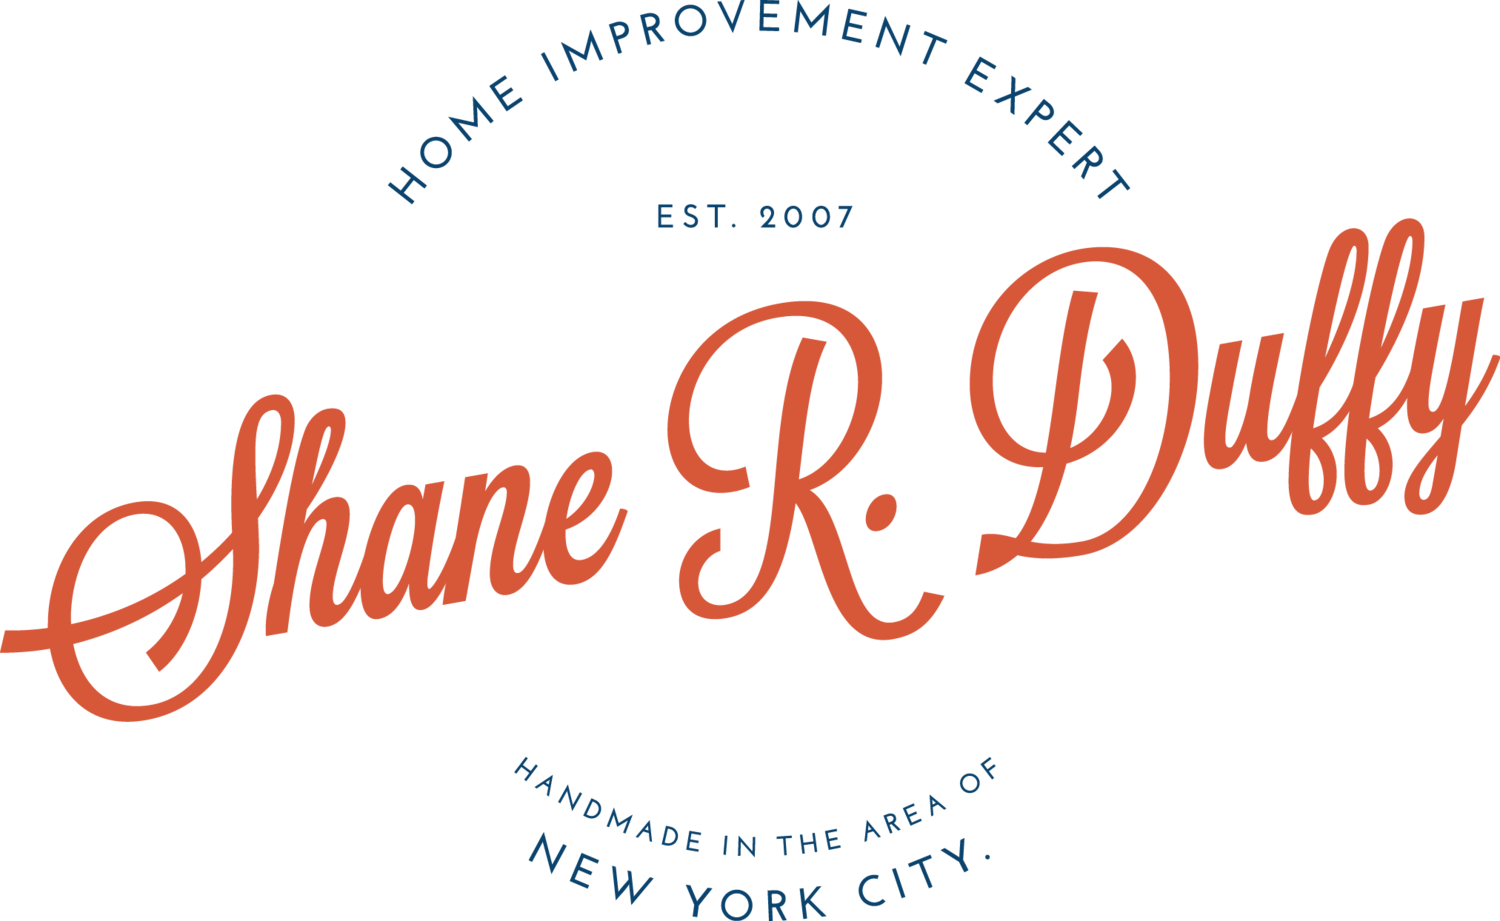 Shane R. Duffy | Home Improvement Expert